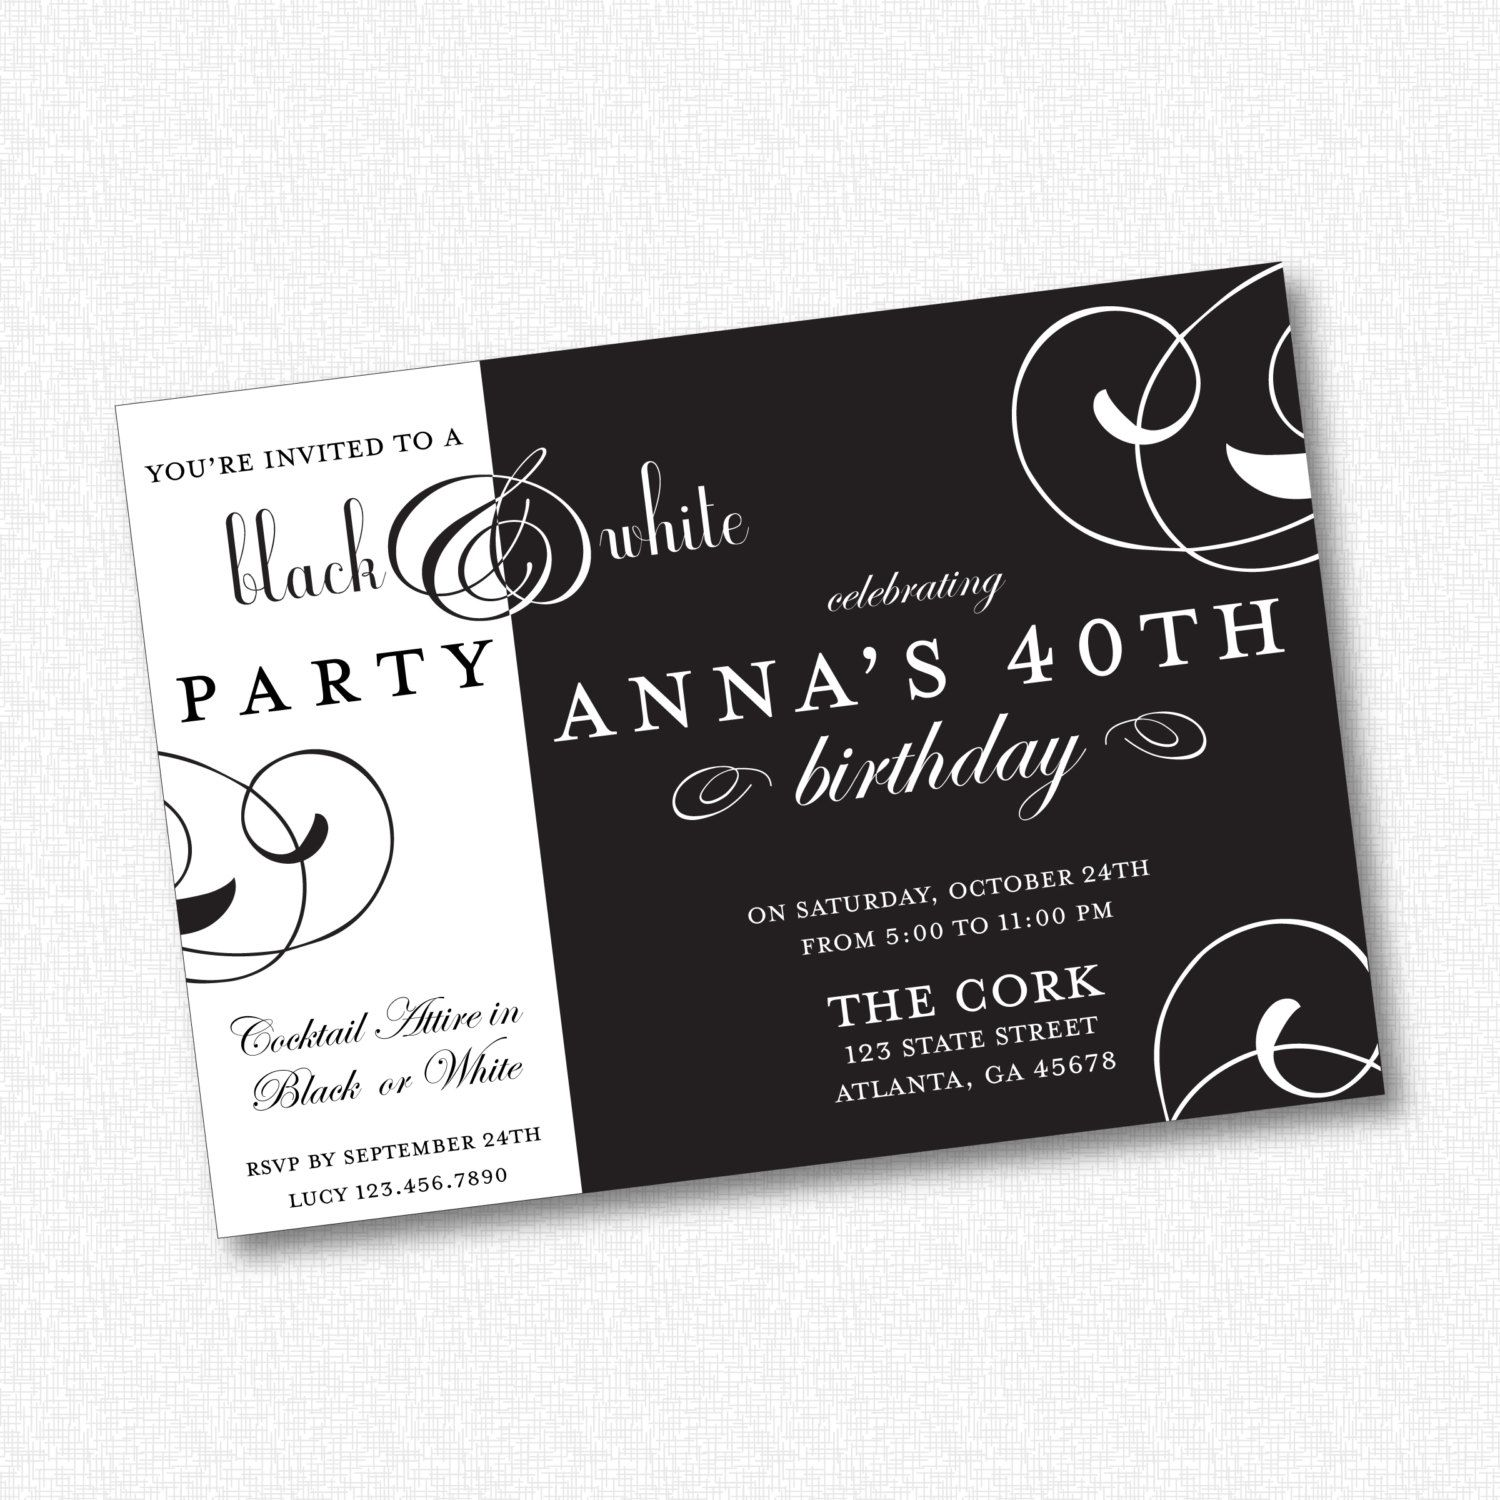 BlackWhitePartyInvitationPRINTABLE21301byidconsultdesign